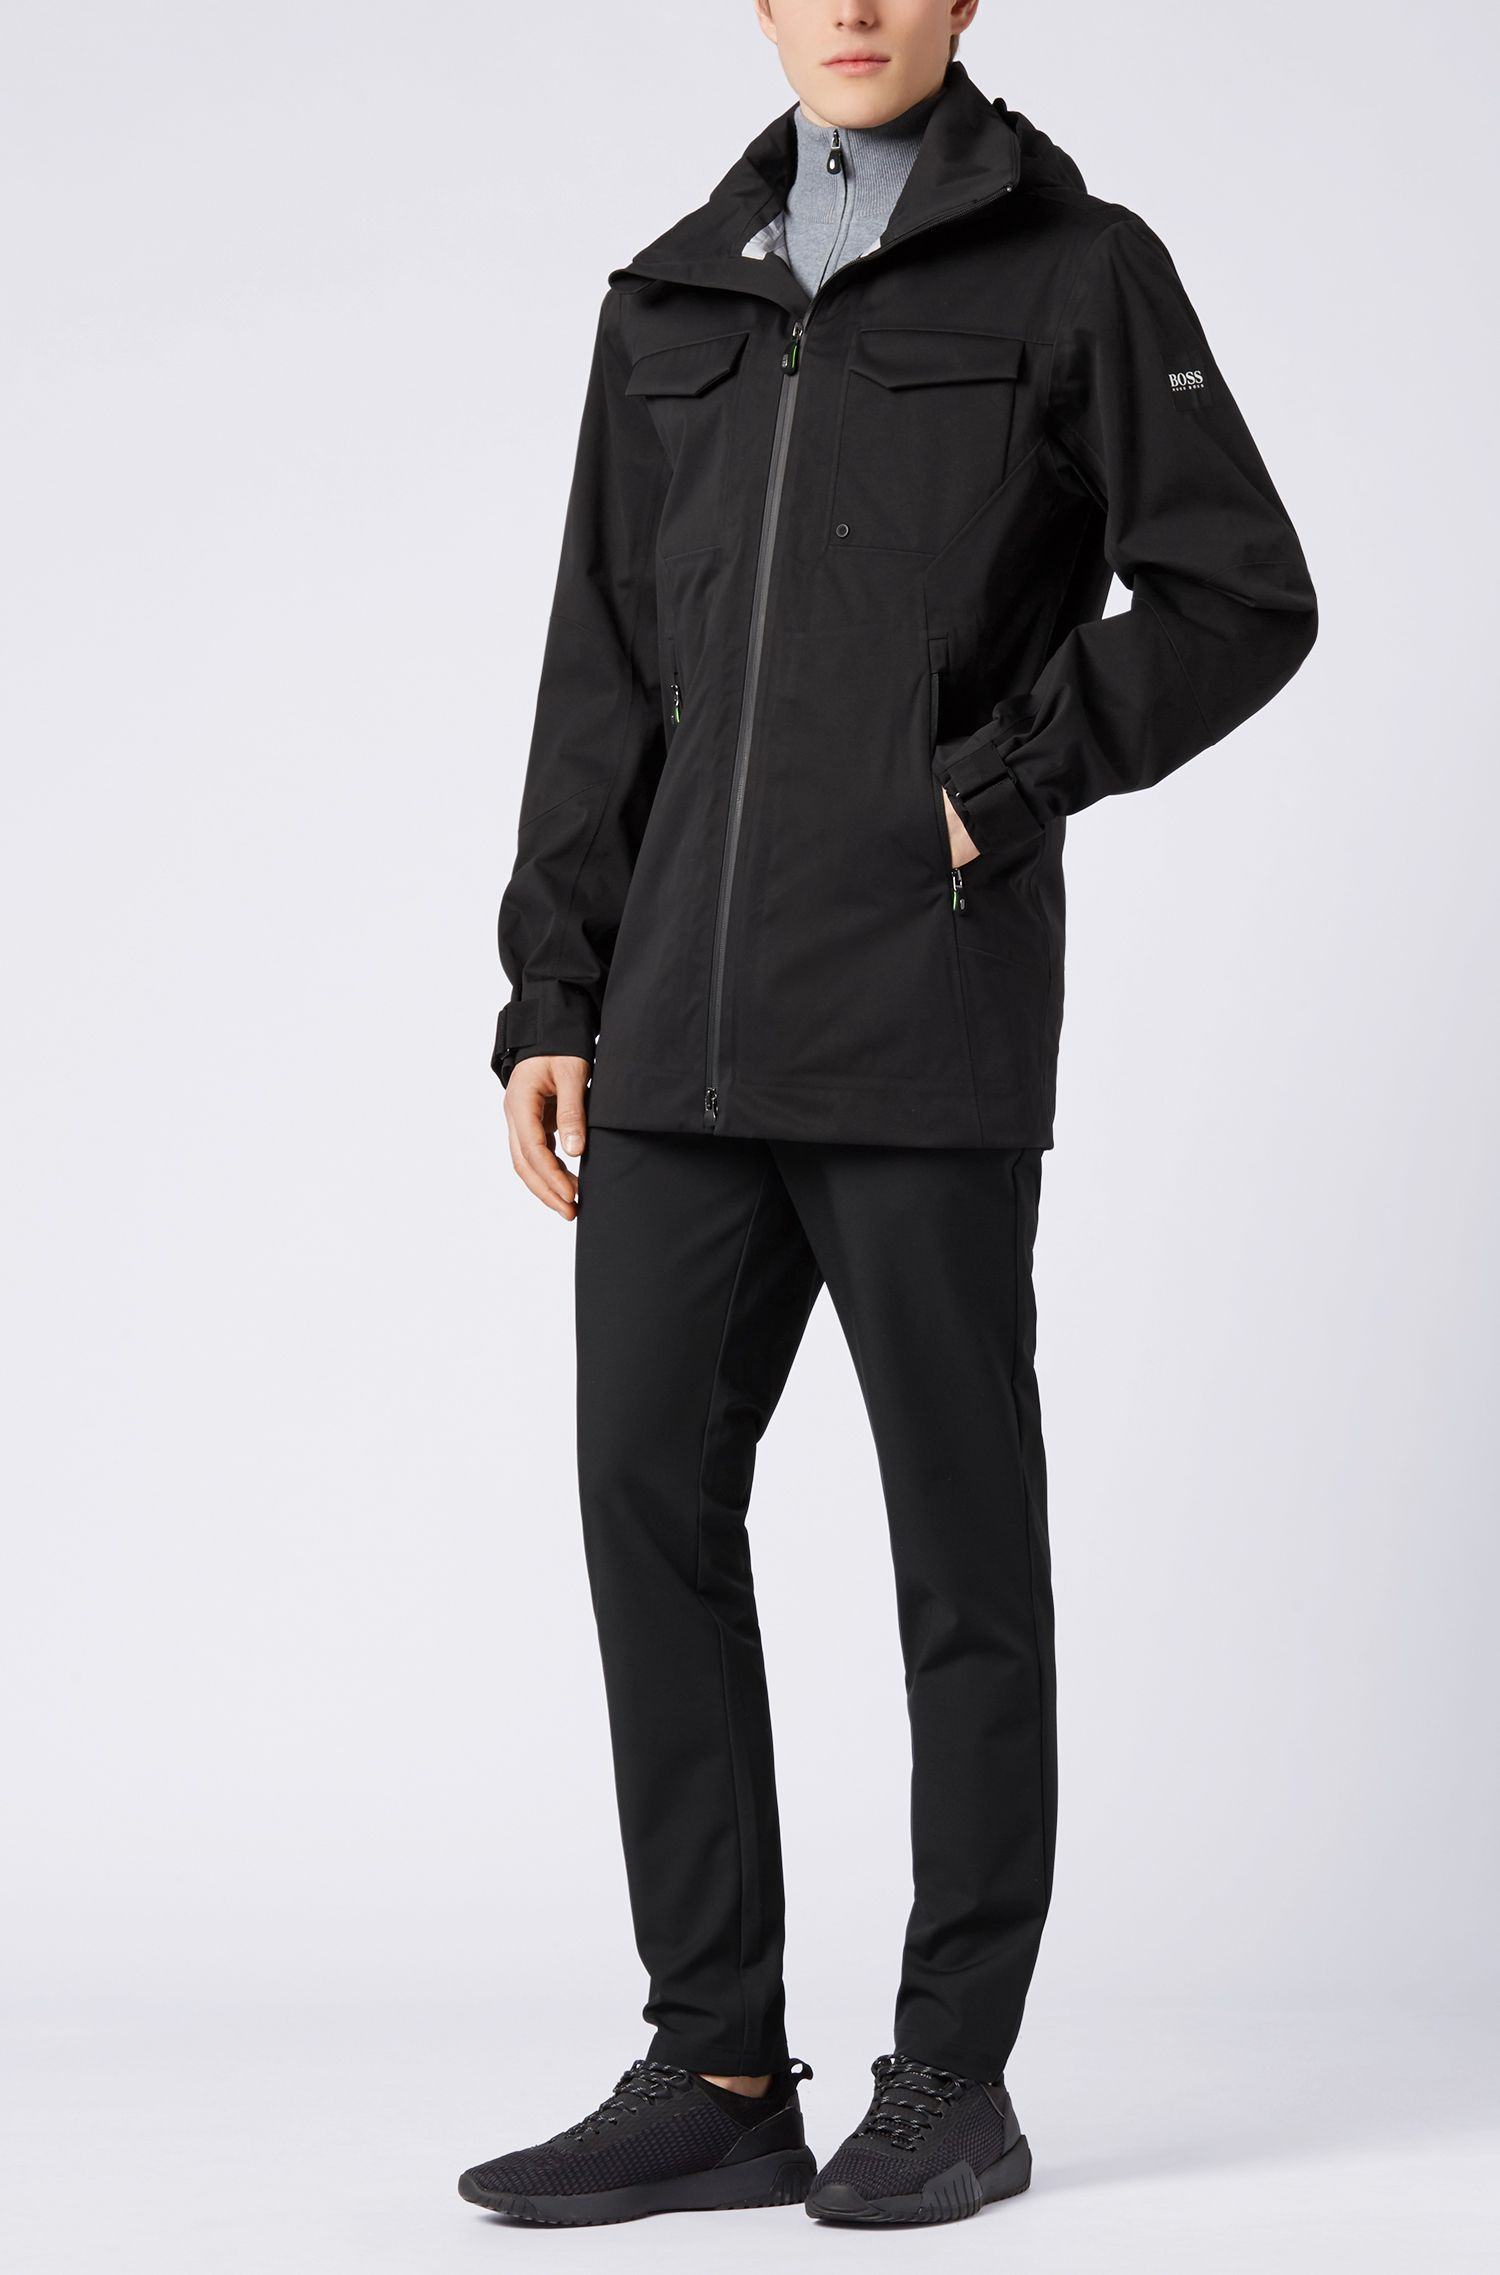 Hugo Boss - Waterproof softshell jacket with stowaway hood - 2